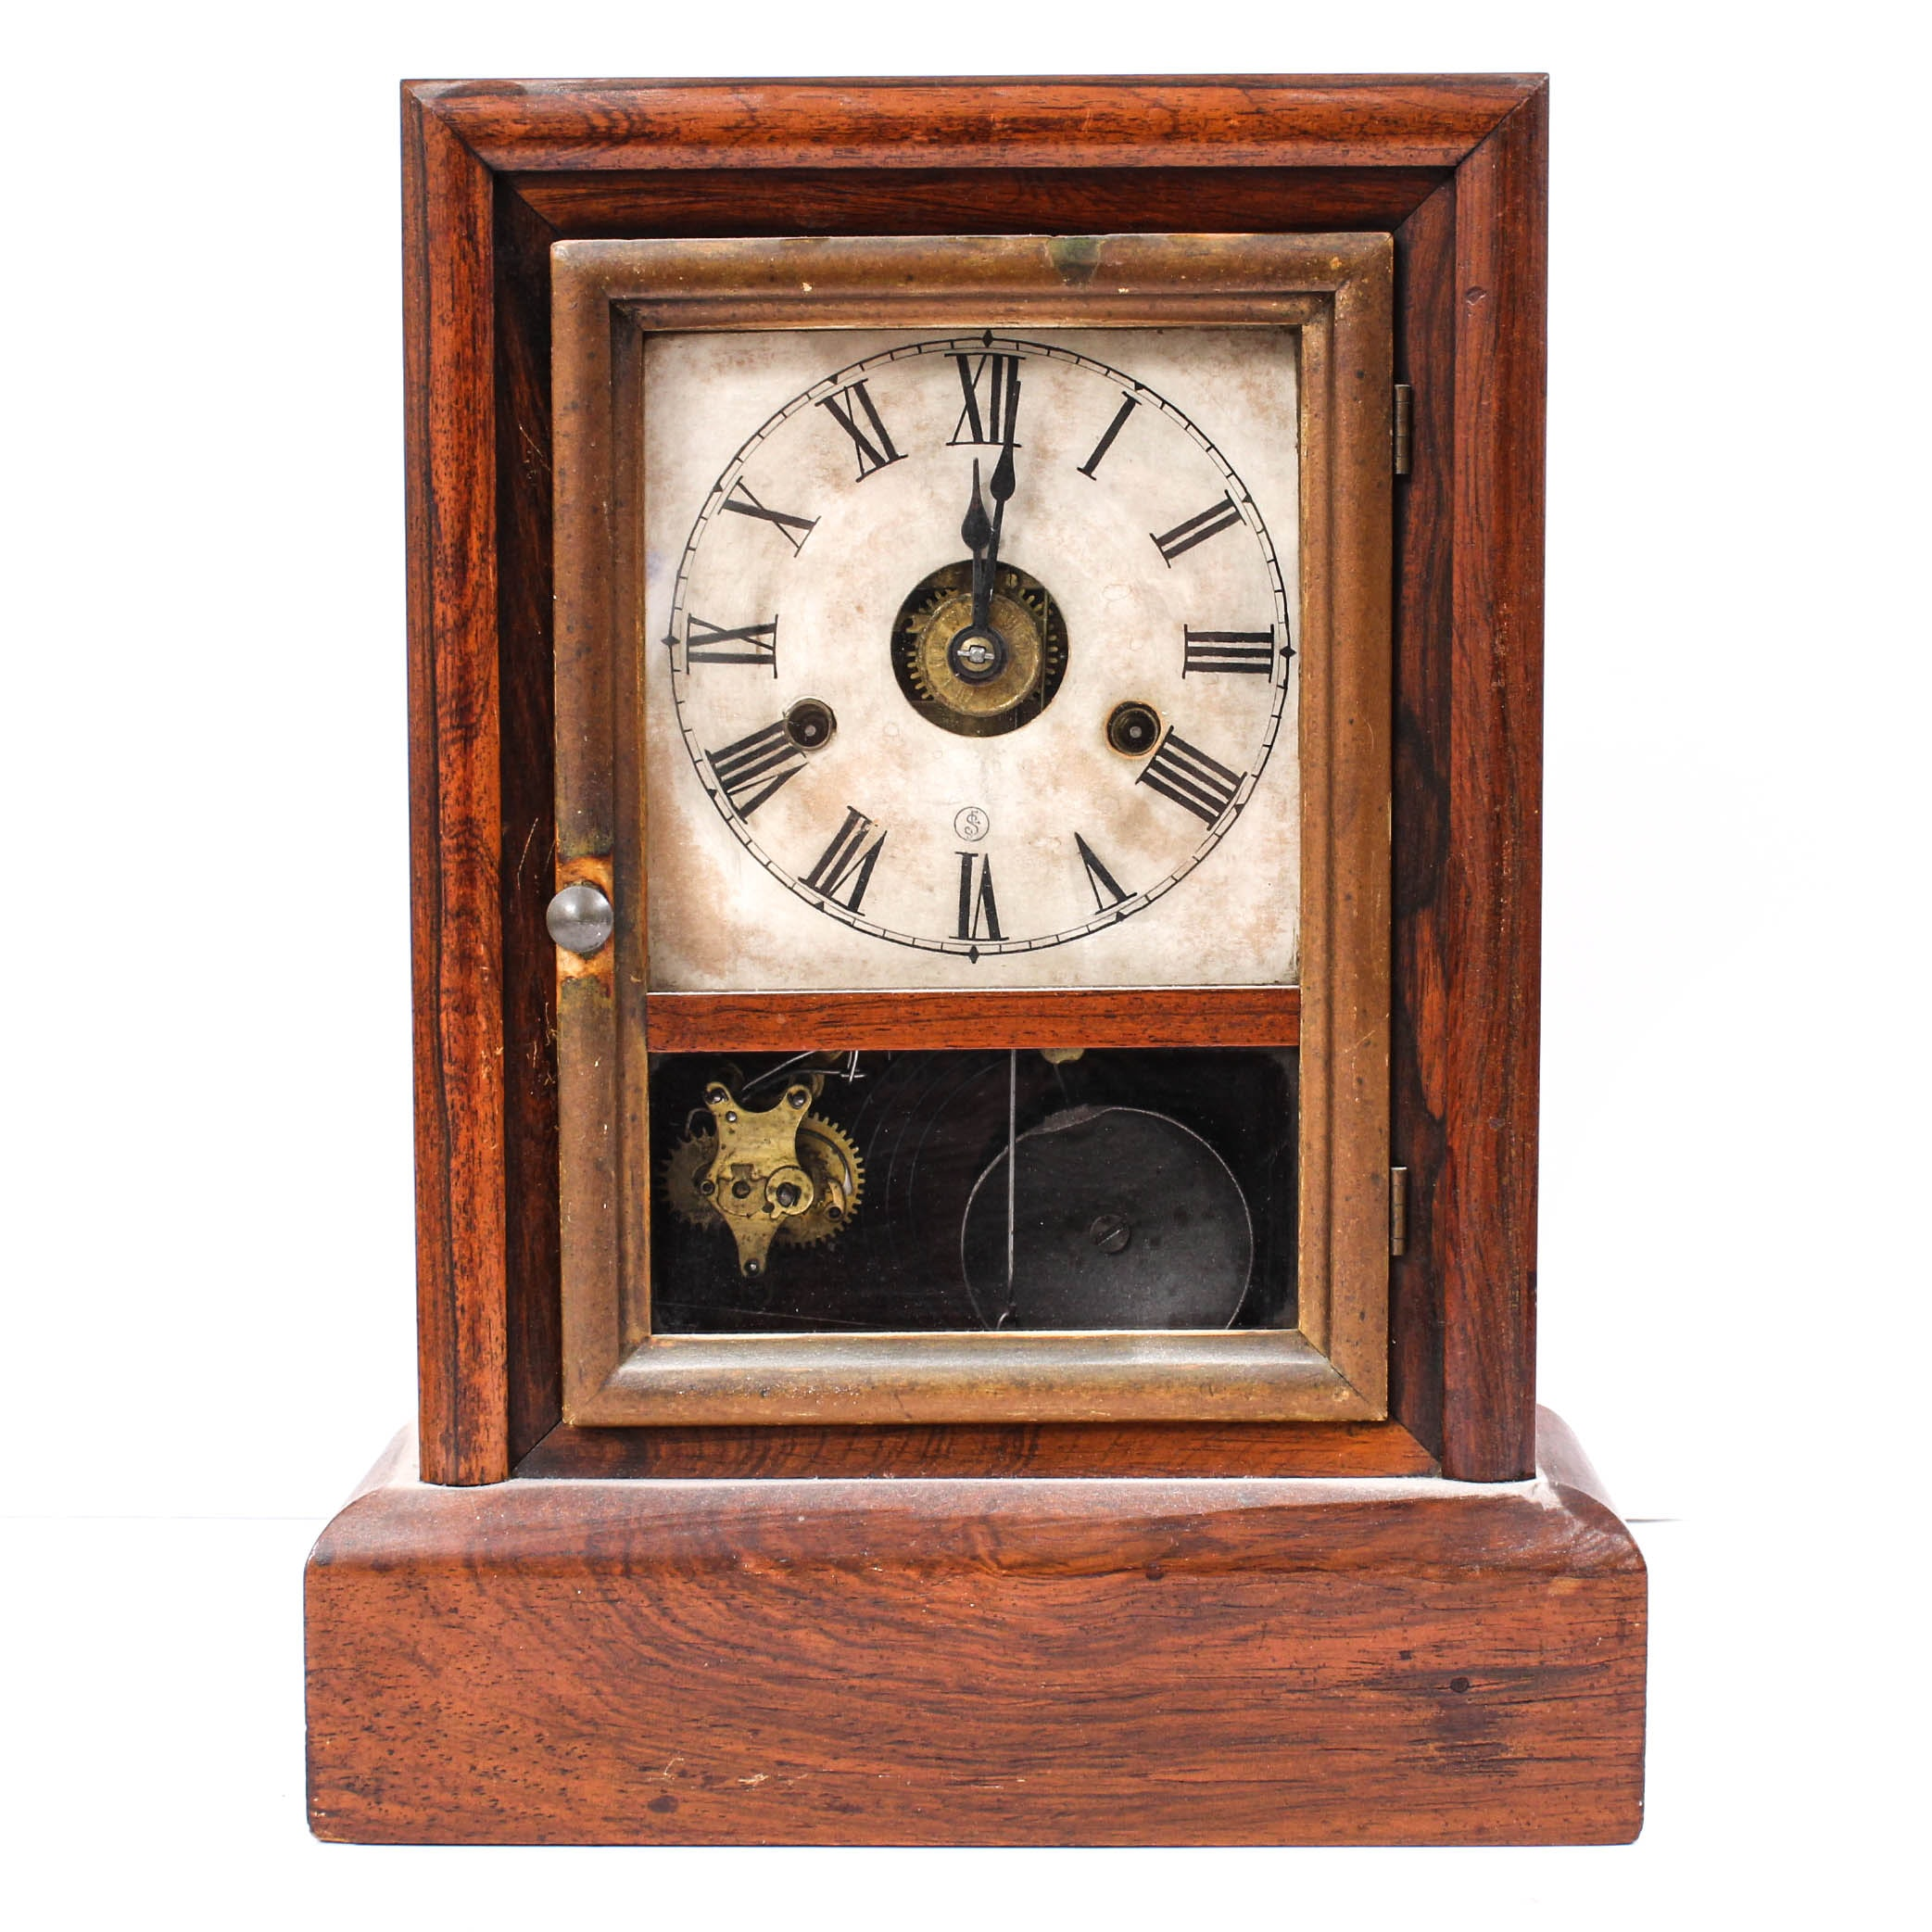 Seth Thomas Mantel Clock in Mahogany Case